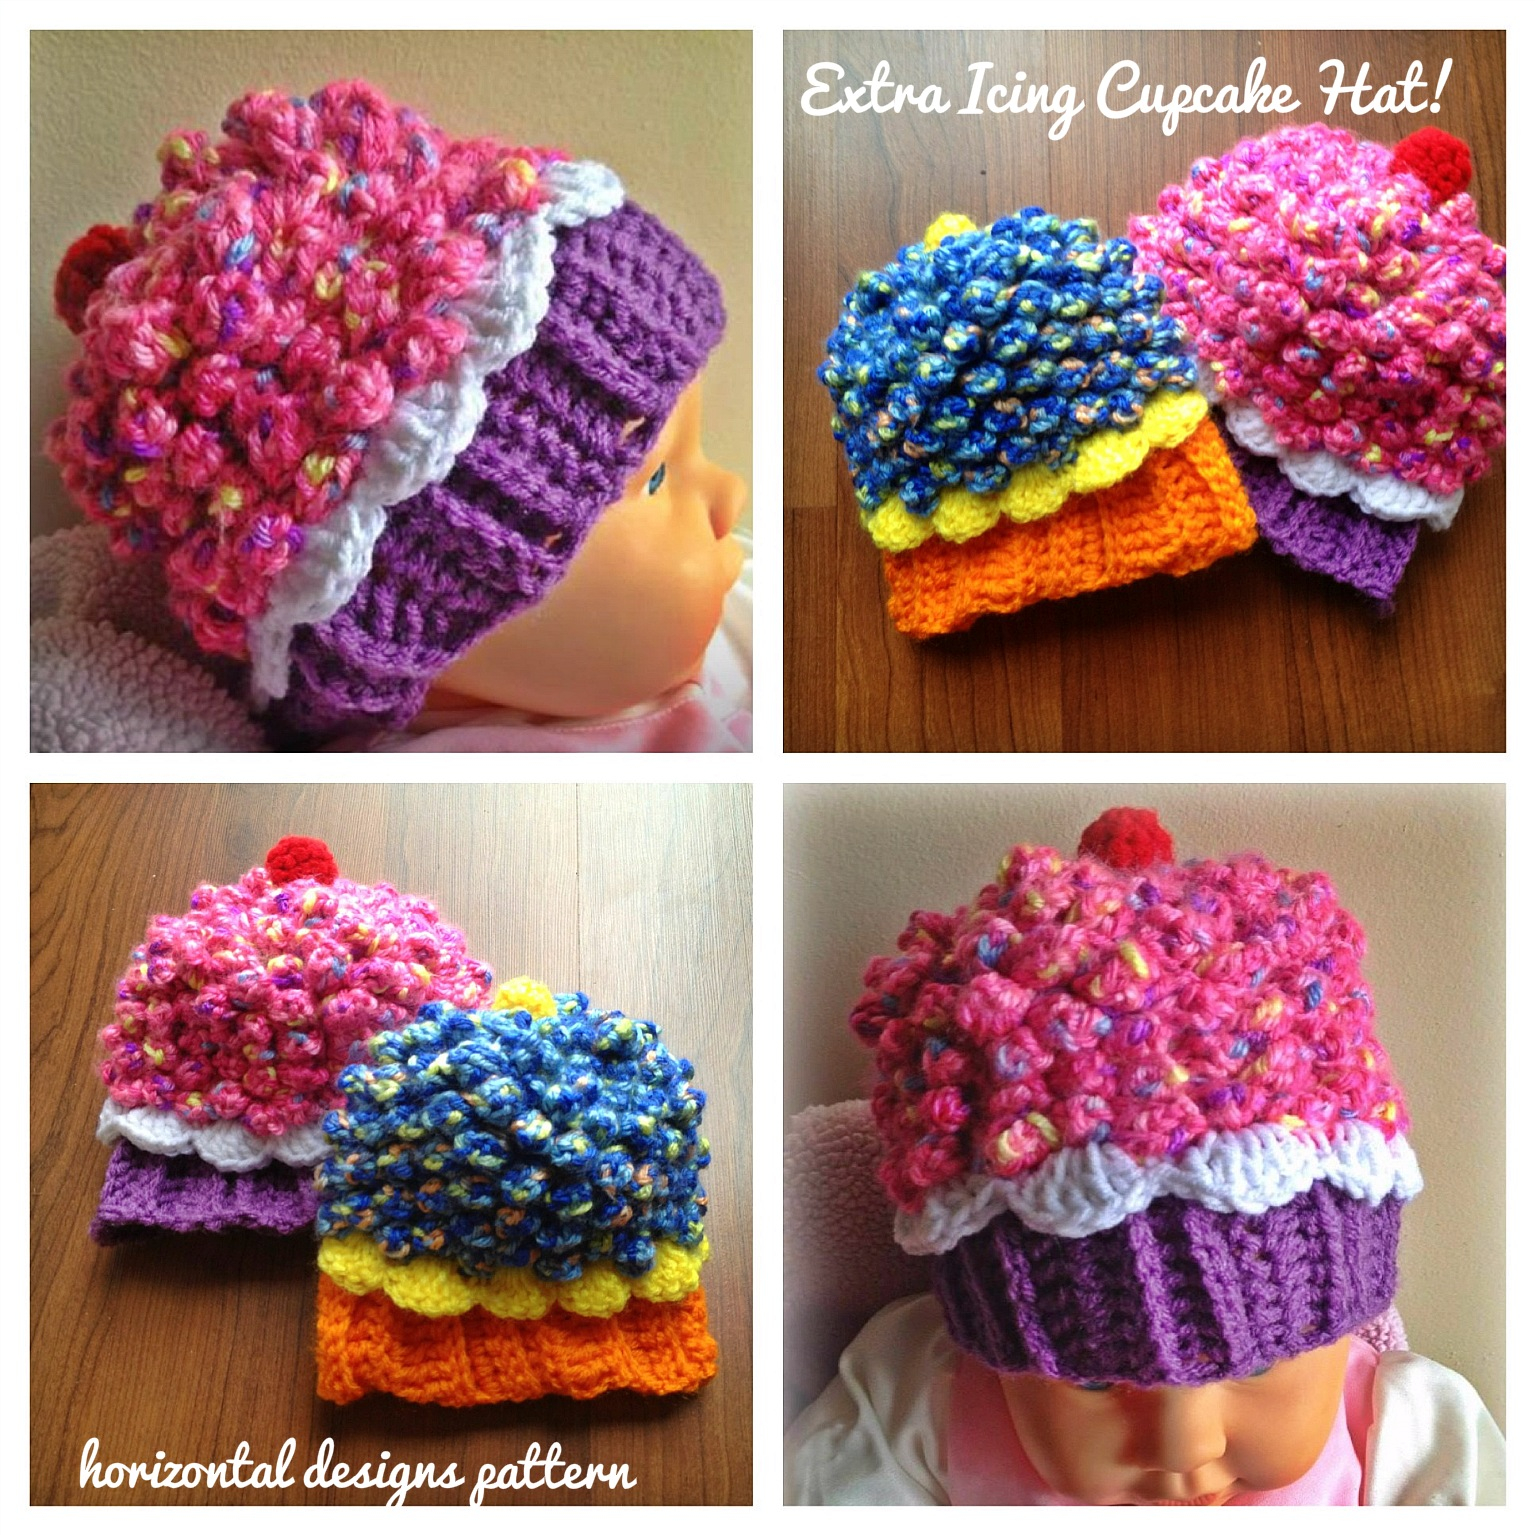 Knitted Cupcake Hat Pattern Studio Create Giveaway Cupcake Hat Extra Icing Pattern Five